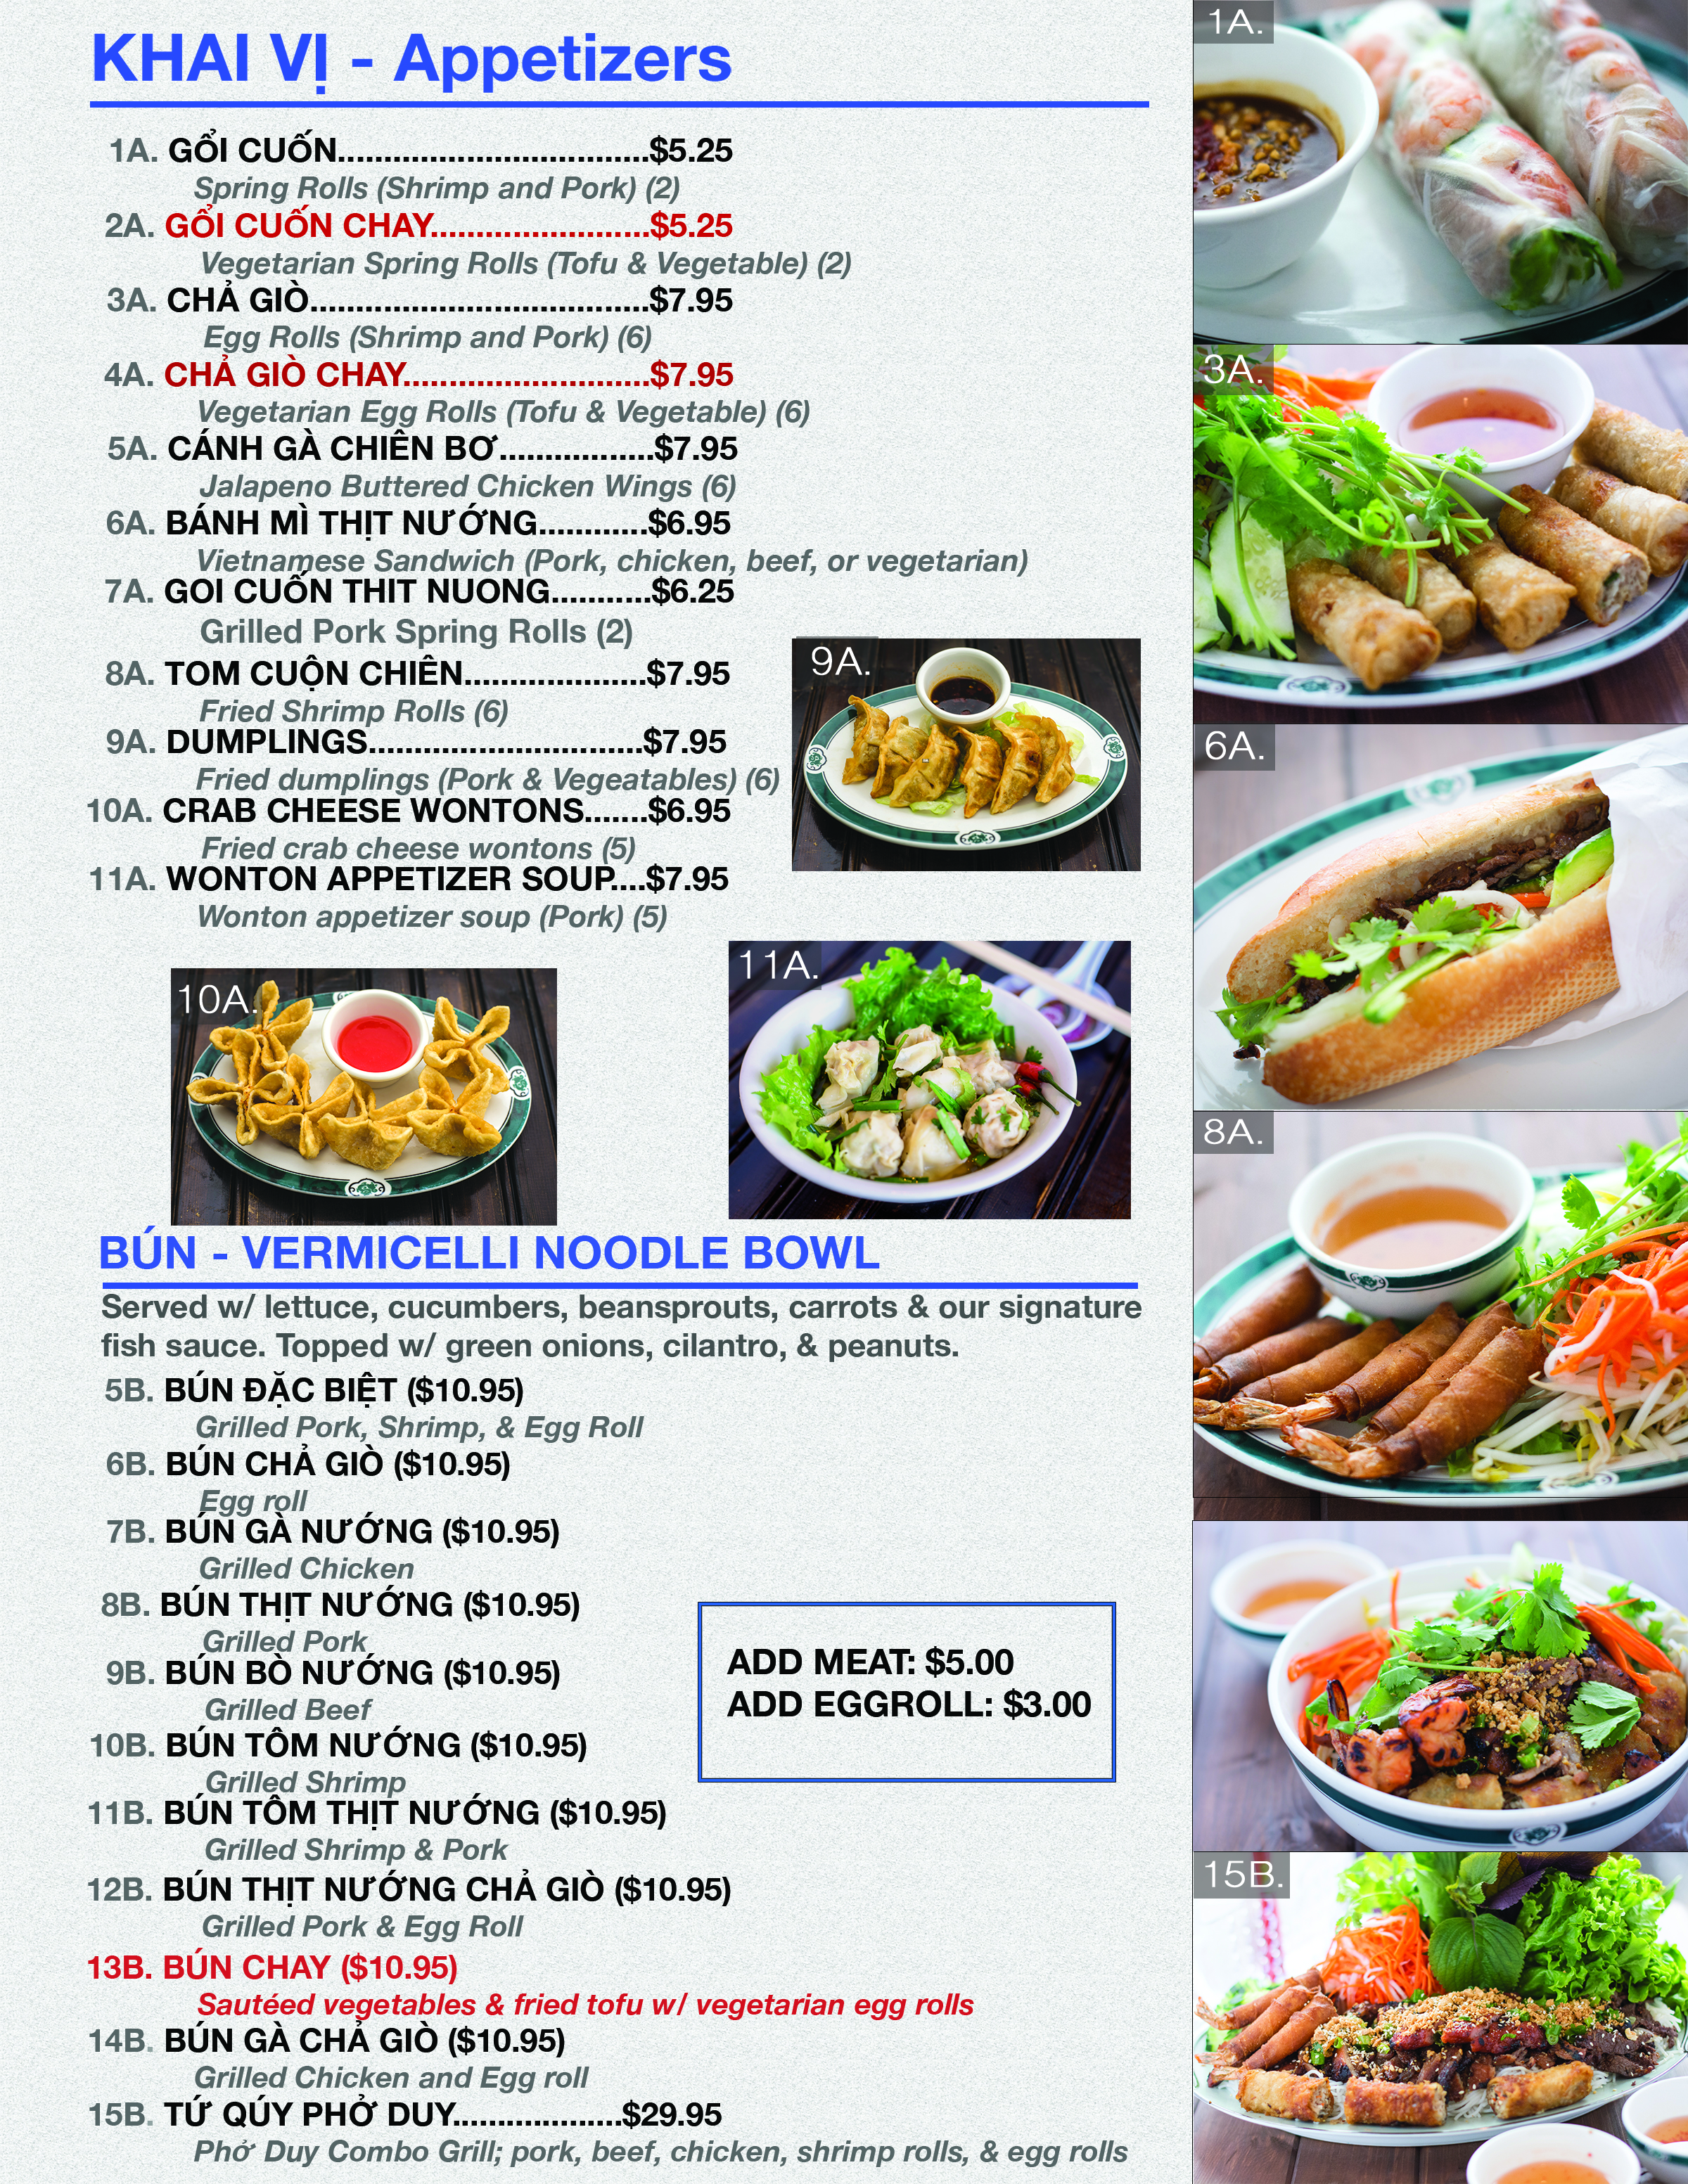 Pho Duy Restaurant Menu Page 1 6/4/17